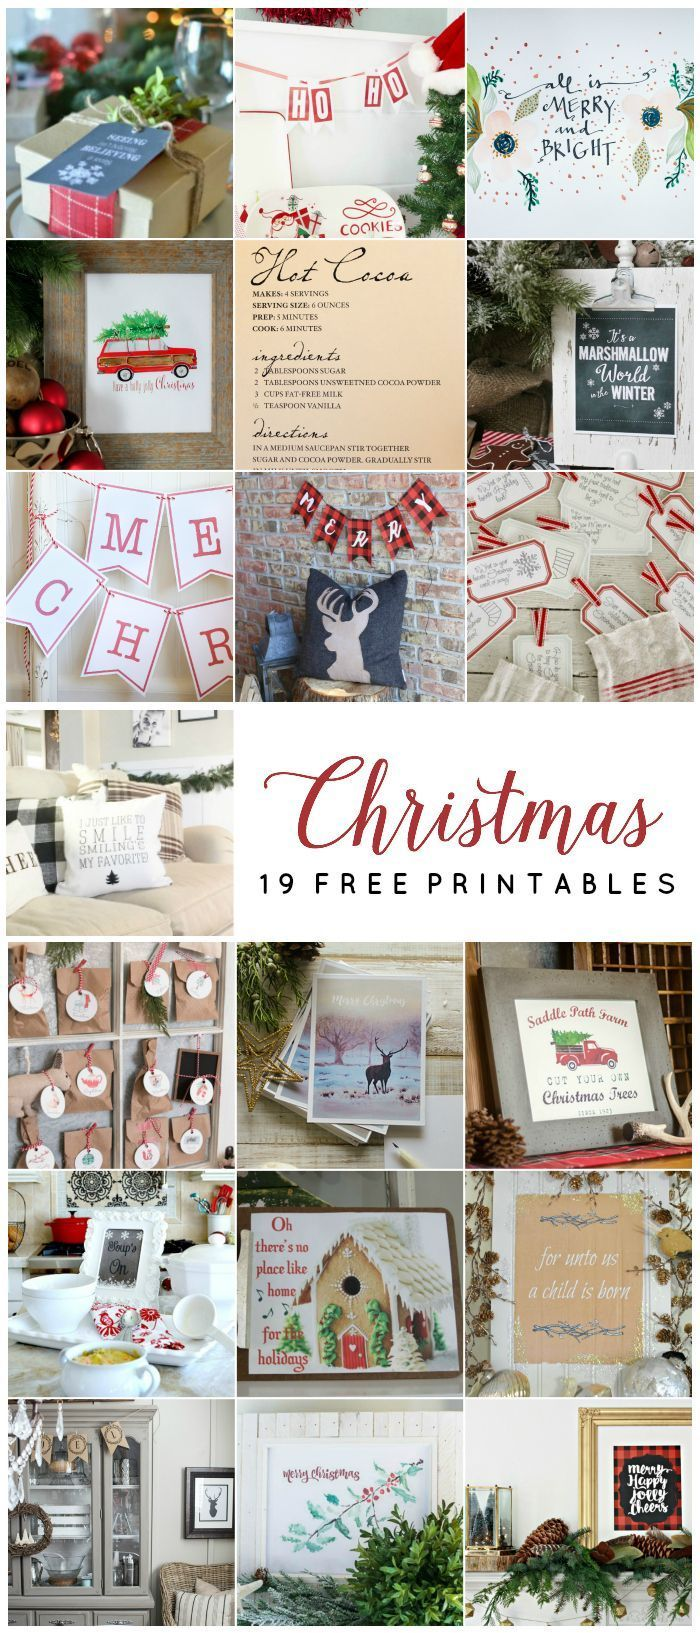 19 New & Fabulous Free Christmas Printables - perfect for decorating or gift giving http://kellyelko.com